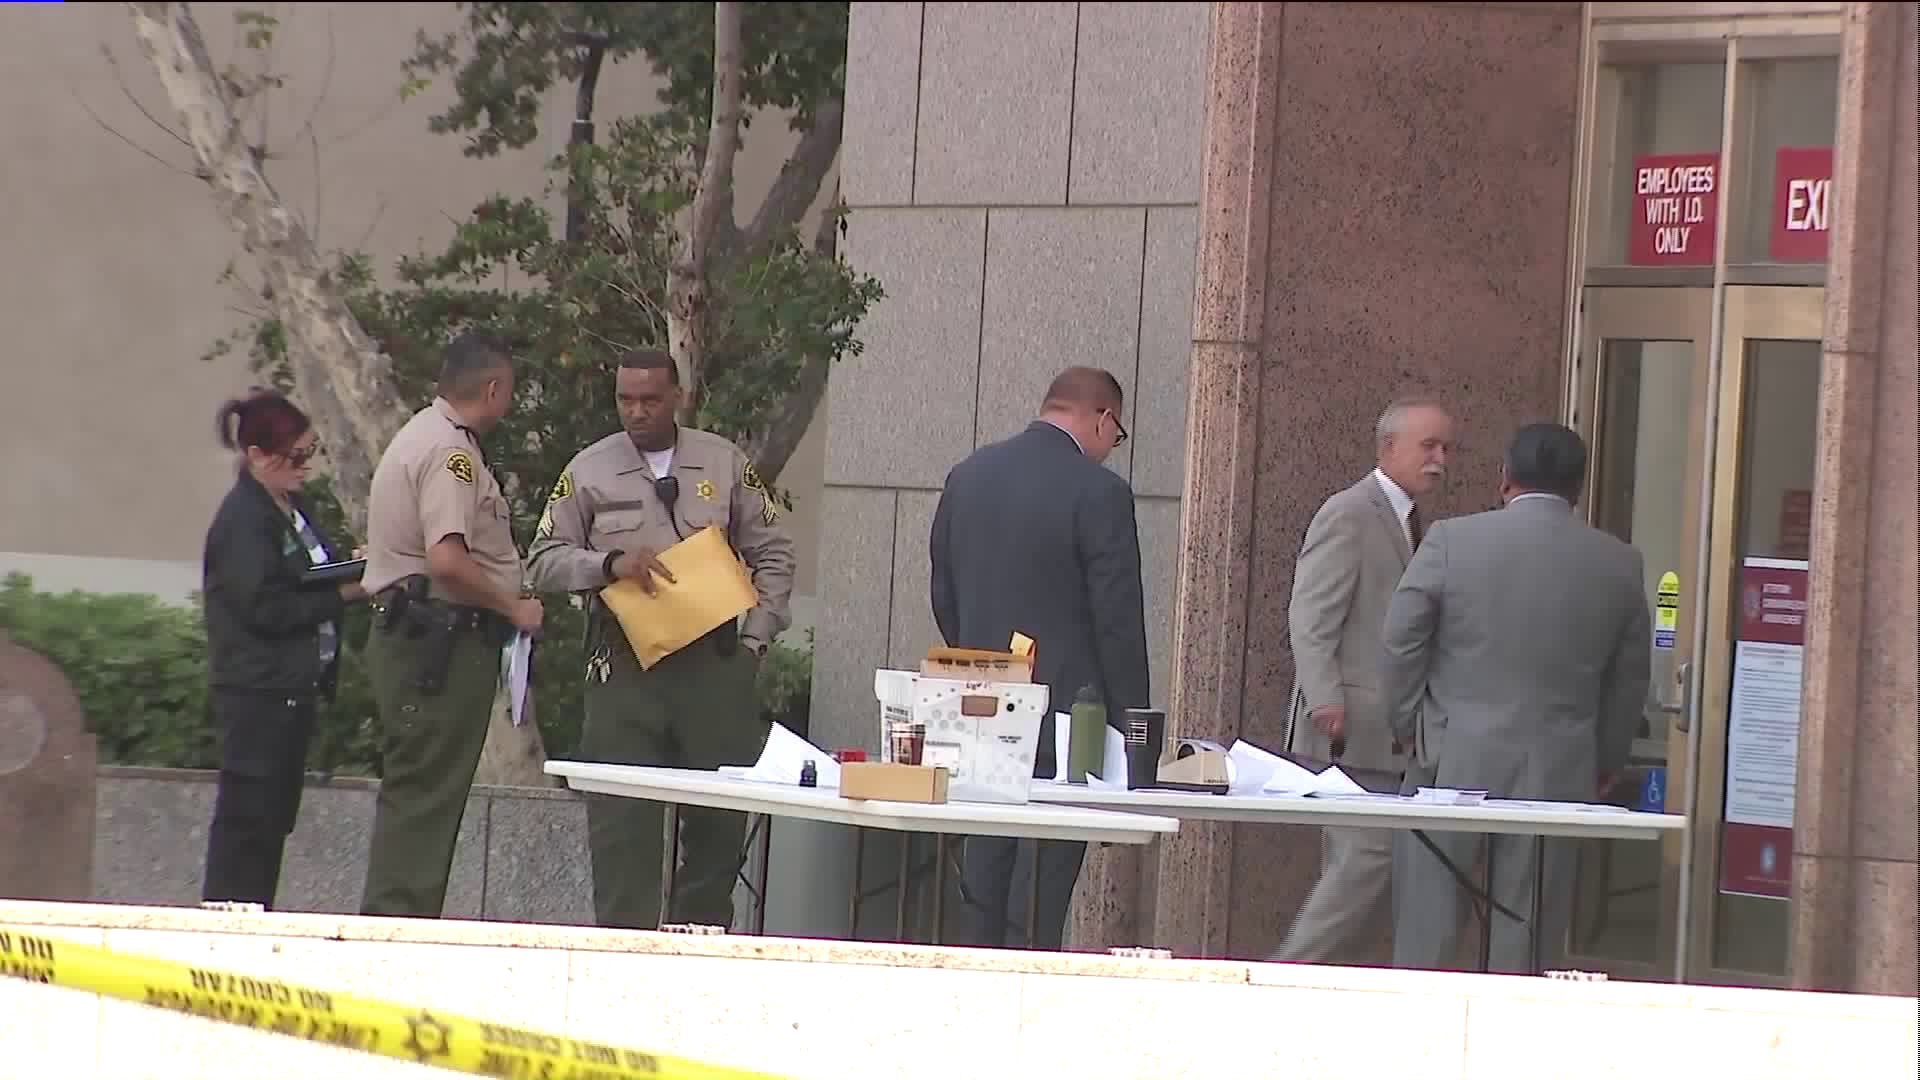 Detectives investigate the scene of where a deputy shot and wounded a hammer wielding man outside the Los Angeles County Superior Court's Van Nuys branch on April 3, 2020. (KTLA)